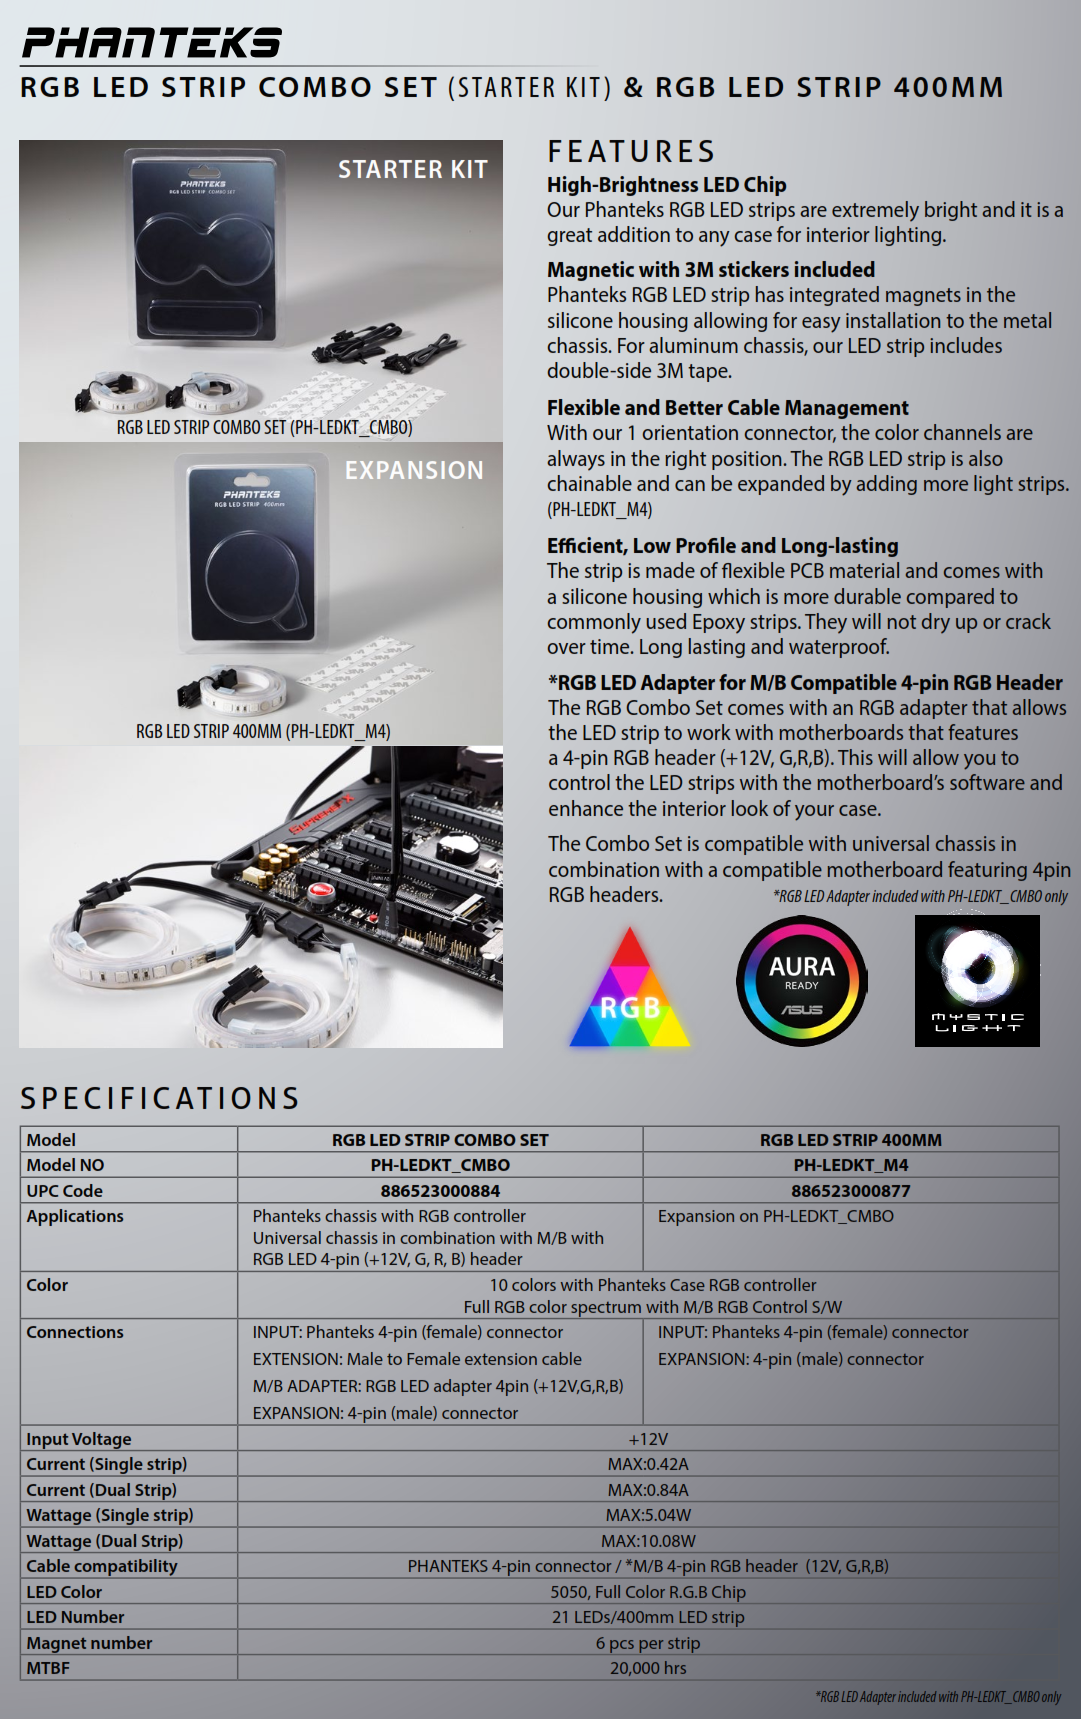 Relativ Official] Case PHANTEKS Case Club for lovers & owners - Page 1399 EF41